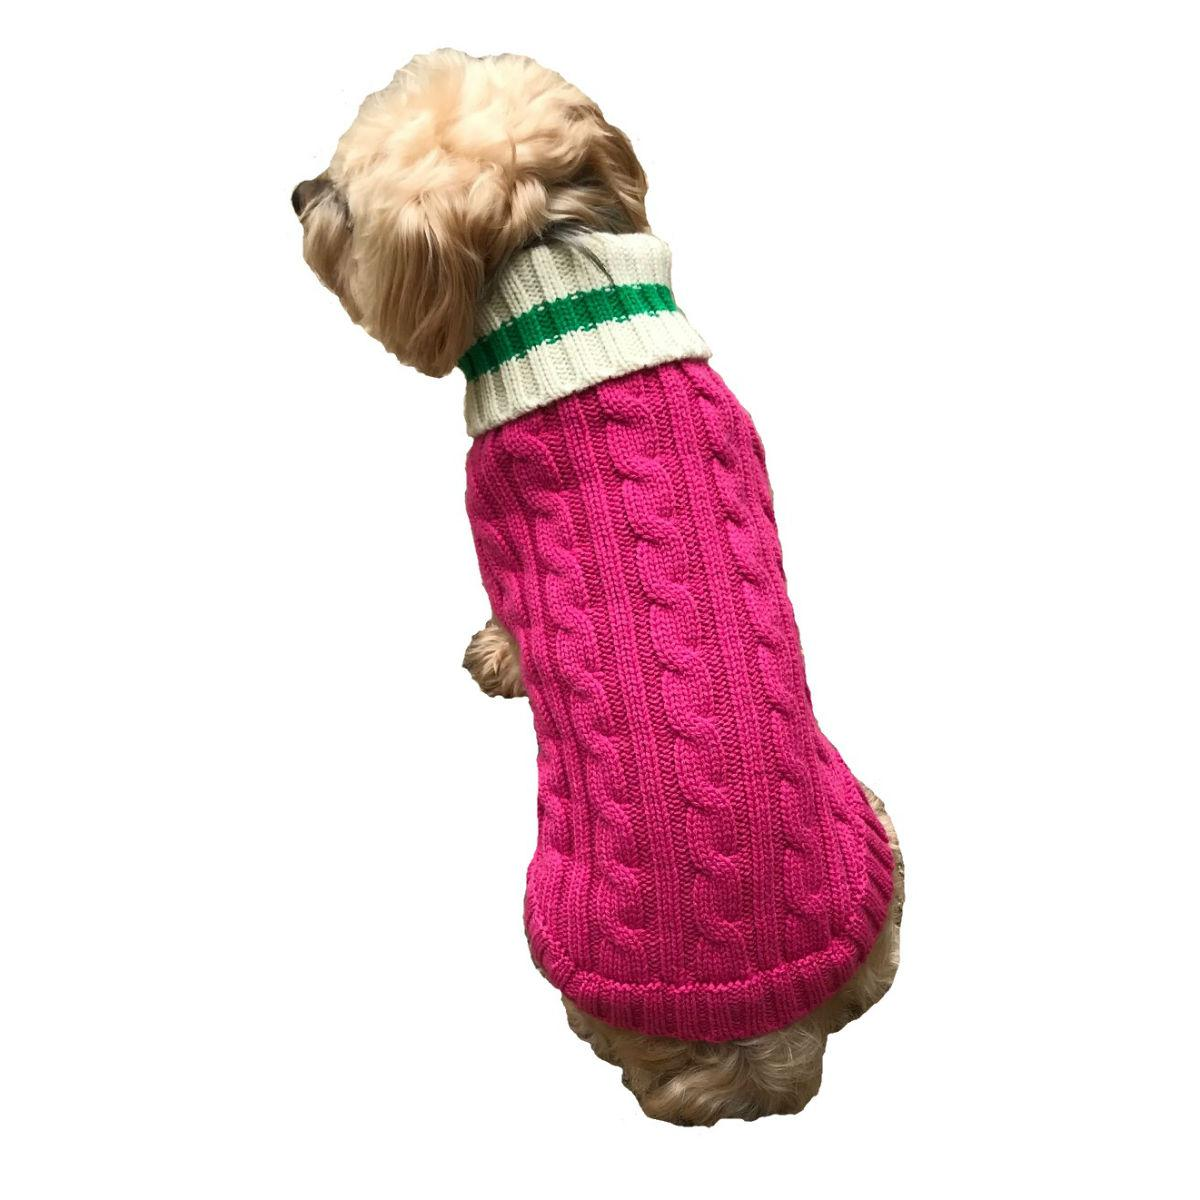 Dallas Dogs Preppy Pup Dog Sweater - Hot Pink with Green Stripe